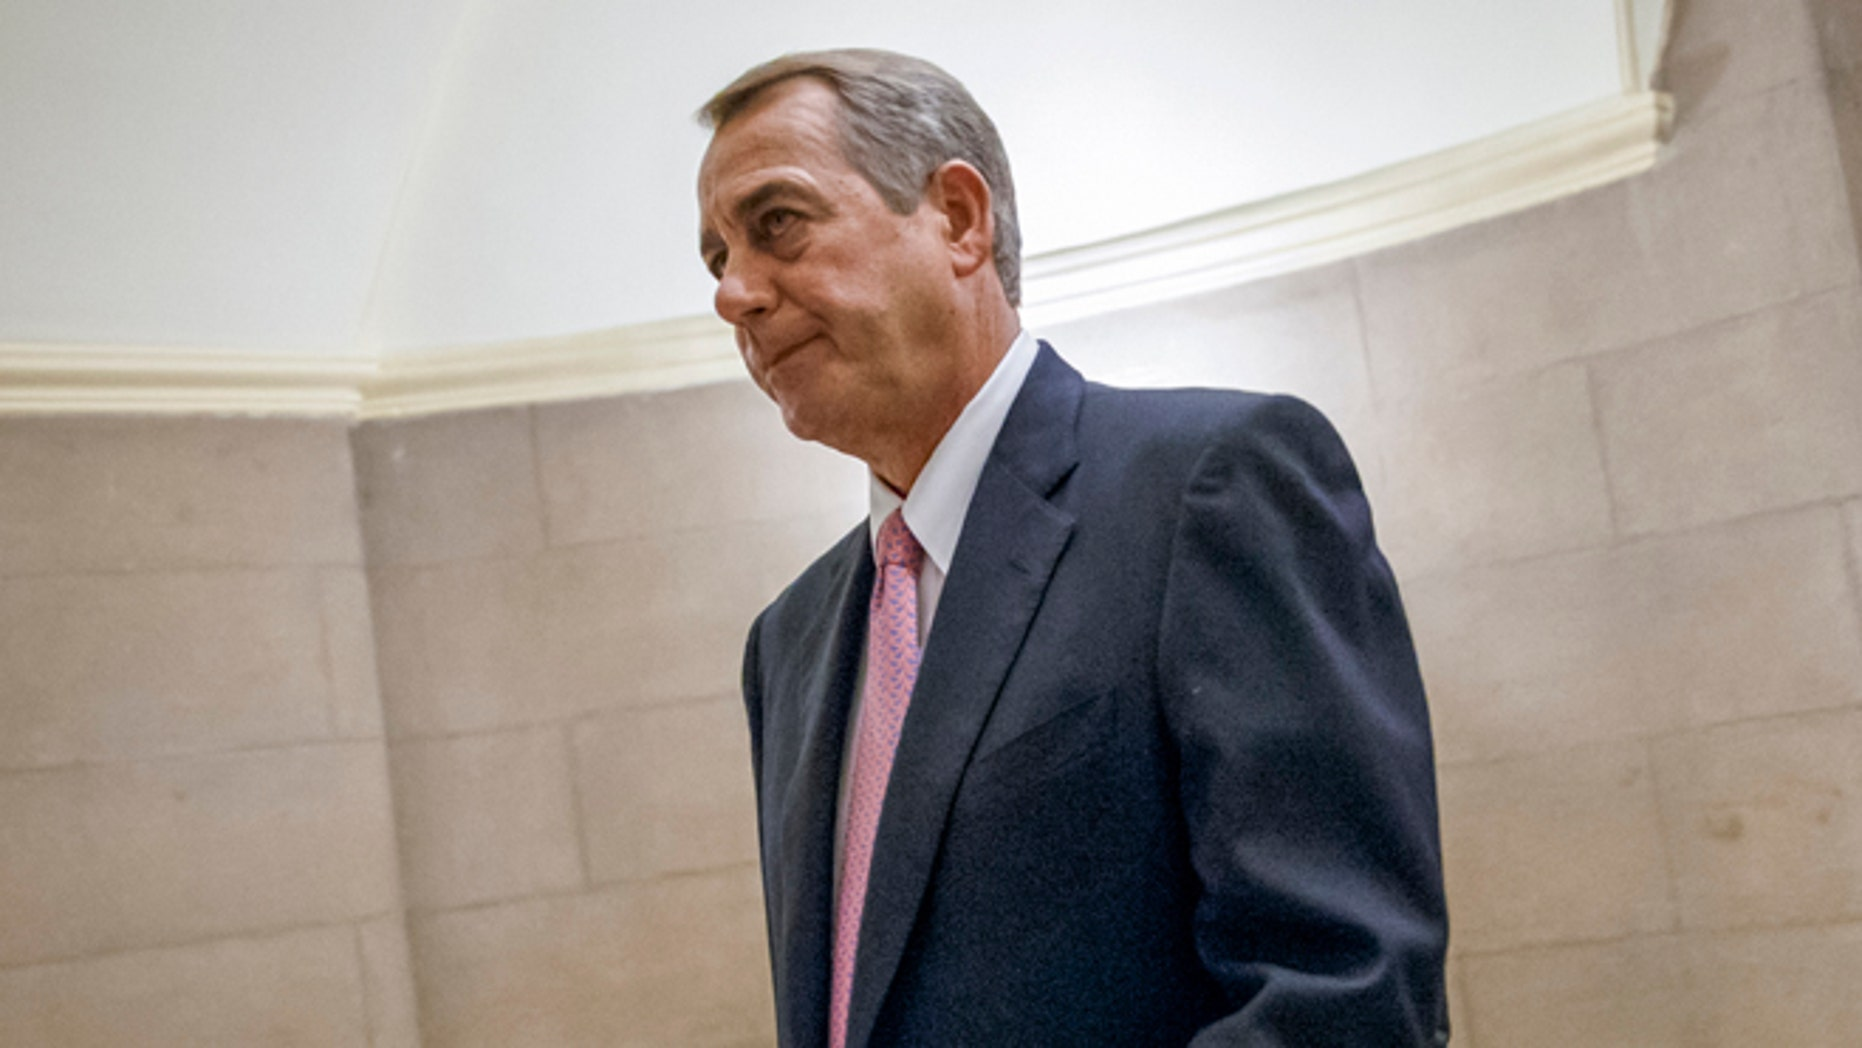 House Speaker John Boehner of Ohio walks to the House chamber on Capitol Hill in Washington, Tuesday, March 3, 2015. Boehnerâs job is safe despite passing yet another big bill that most of his Republican colleagues oppose, as he did Tuesday to avert defunding the Department of Homeland Security. But Boehner and his leadership team appear destined to confront fratricidal fights for months to come. The friction exposes deep GOP ideological differences as the 2016 presidential campaign gets under way.  (AP Photo/J. Scott Applewhite)